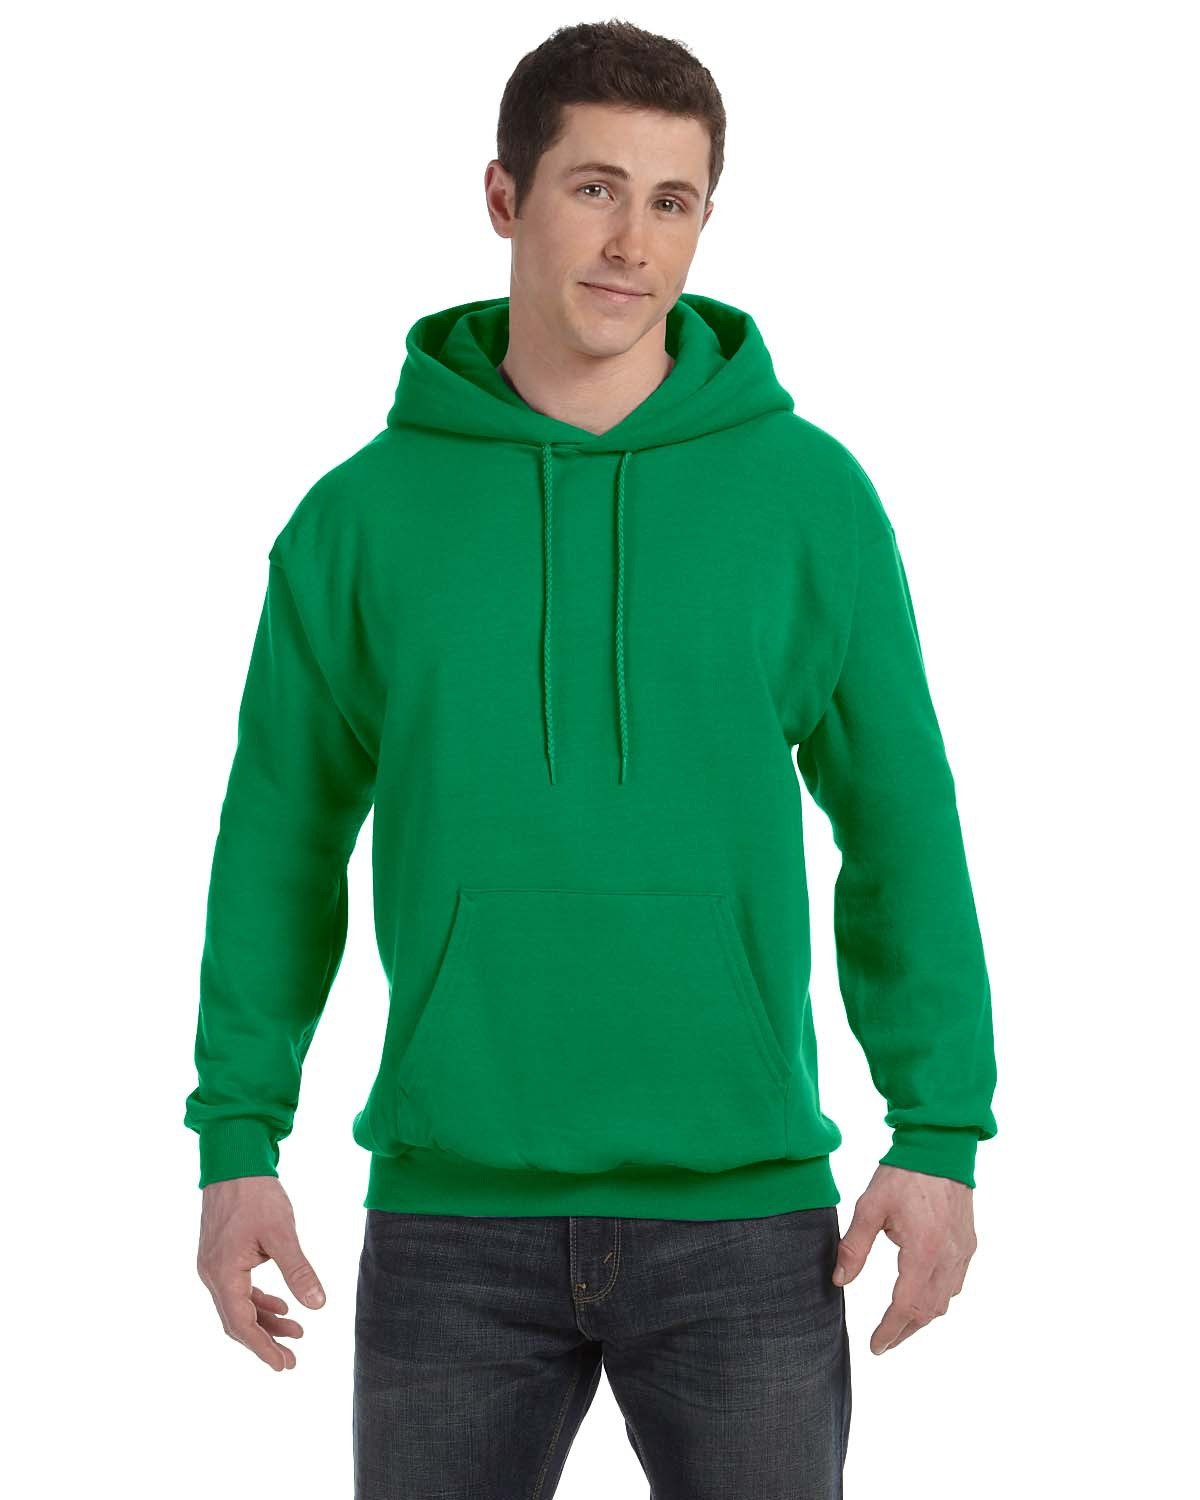 Hanes Unisex Ecosmart® 50/50 Pullover Hooded Sweatshirt KELLY GREEN